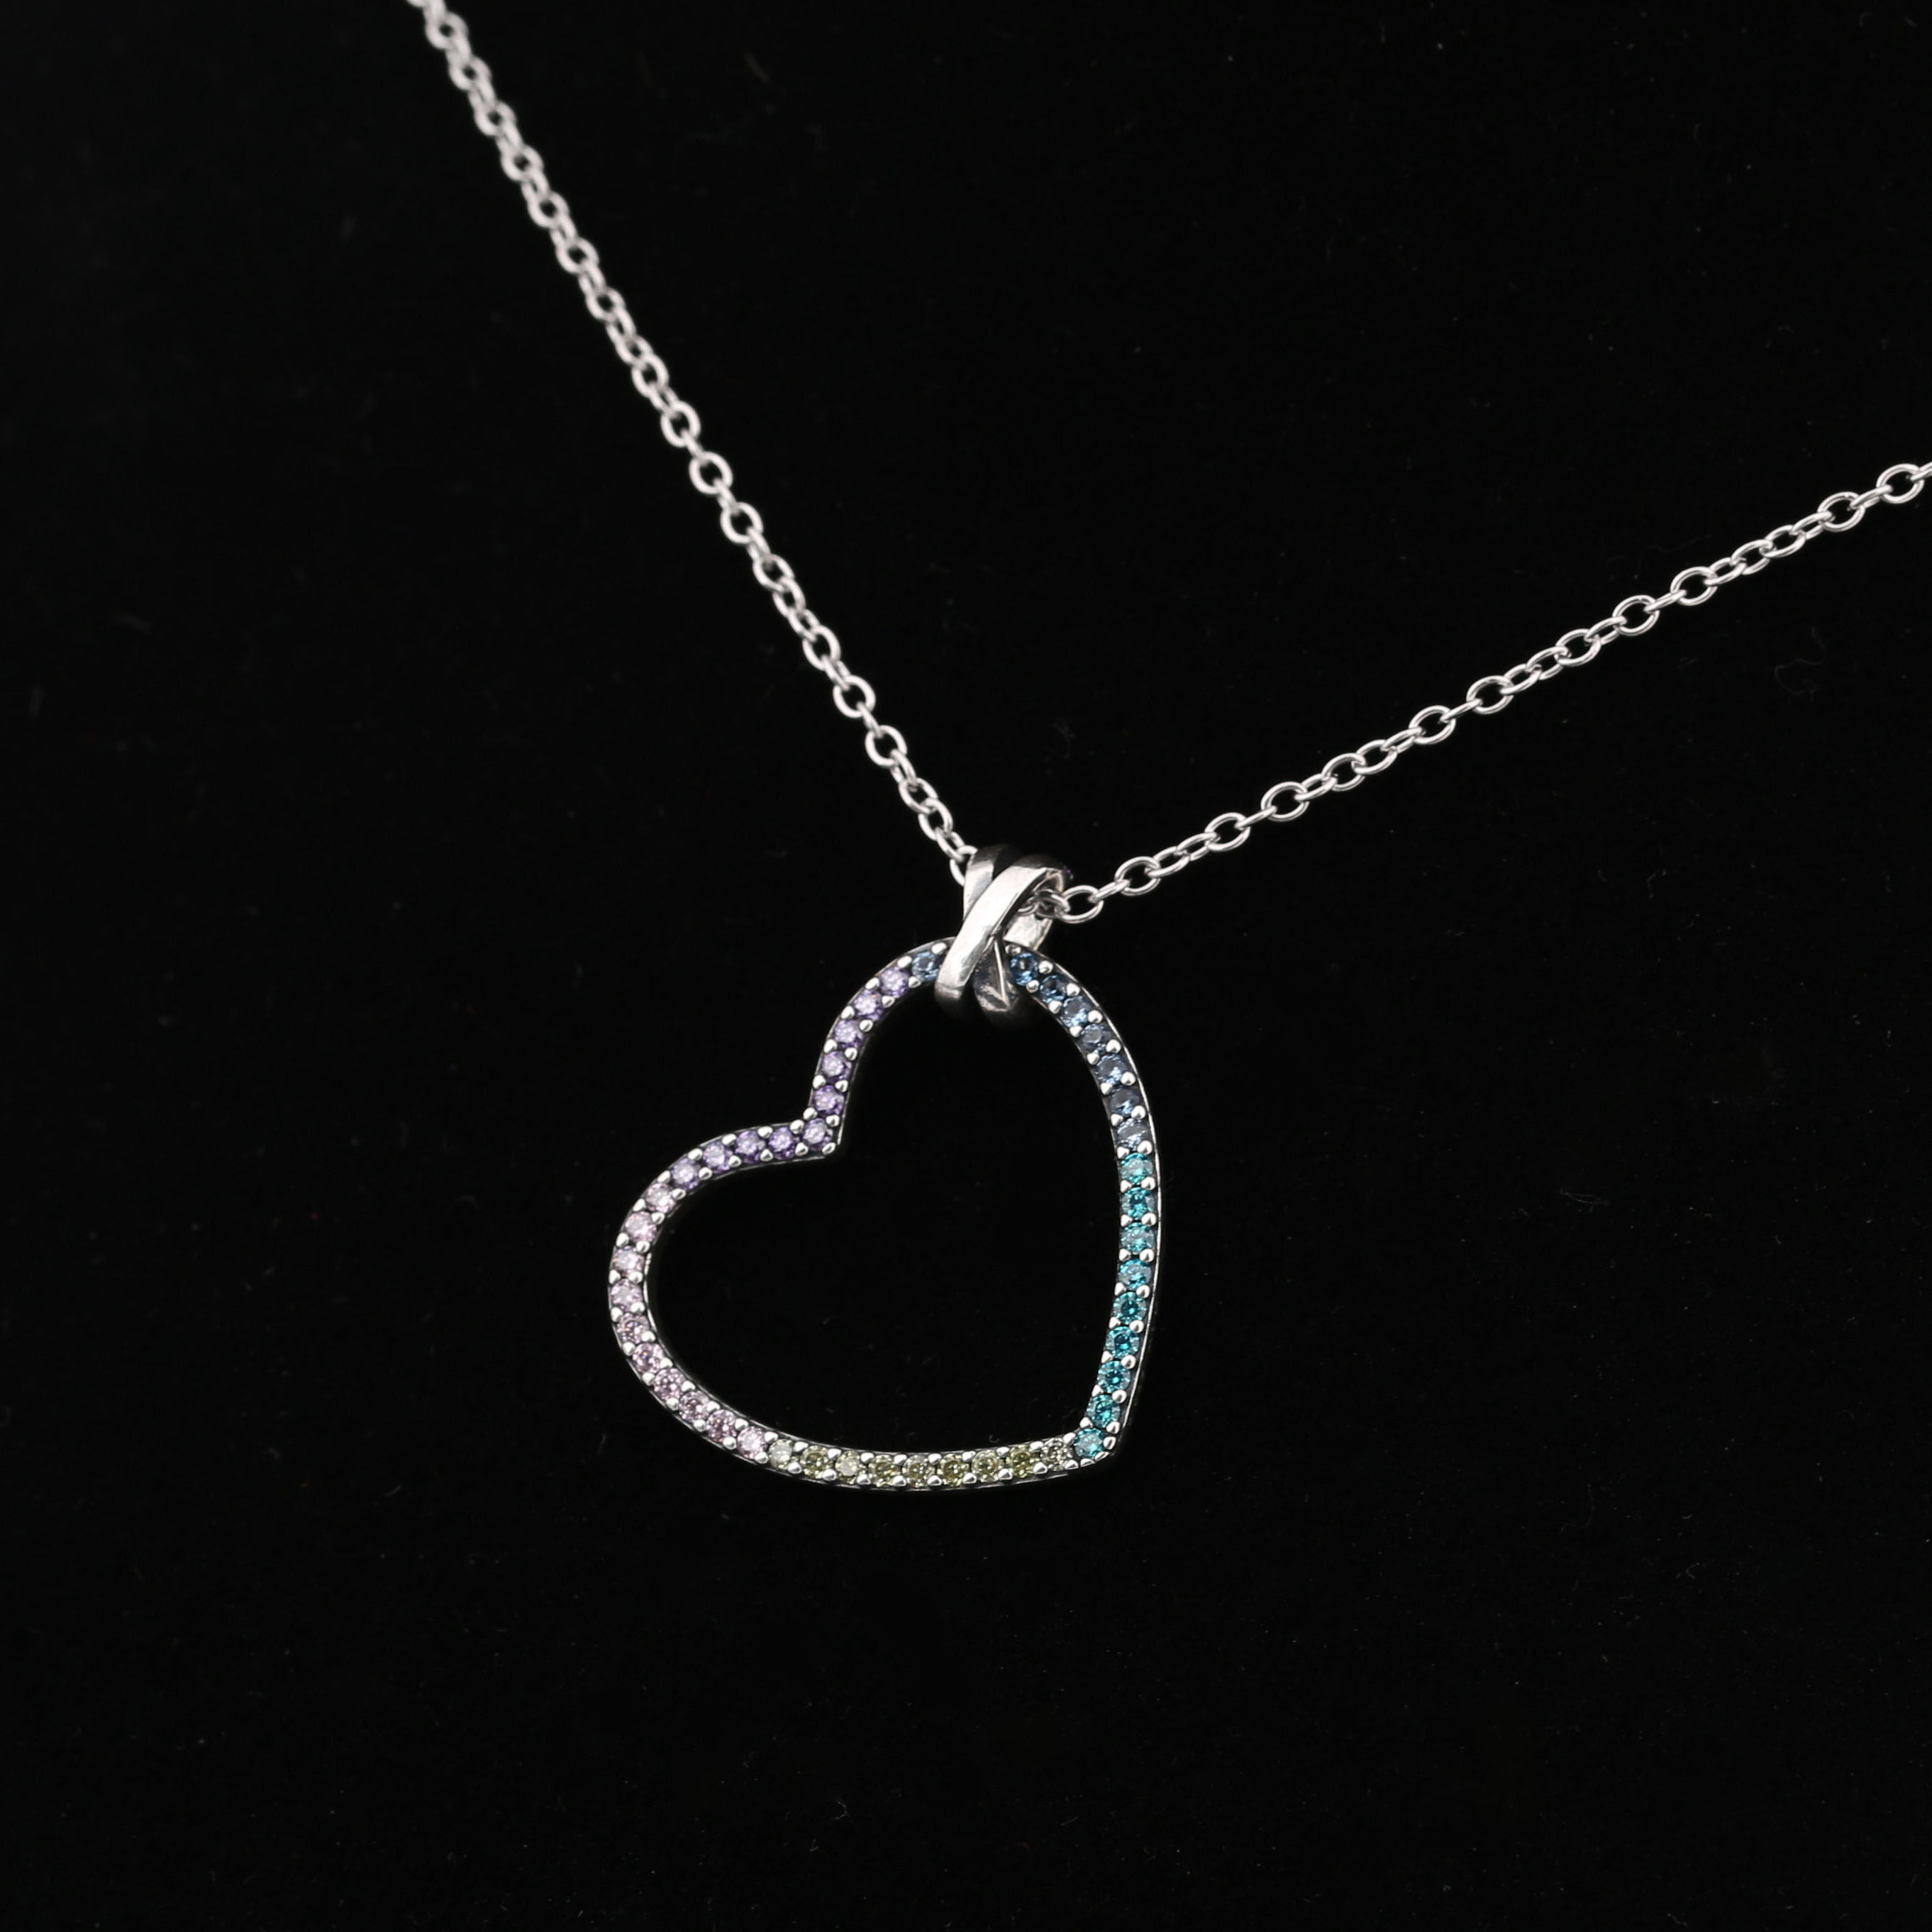 3471540d3 2018 Spring 925 Sterling Silver Original Pandora Multi Colour Heart Pendant  Necklace Clear CZ For Women DIY Jewelry-in Beads from Jewelry & Accessories  on ...